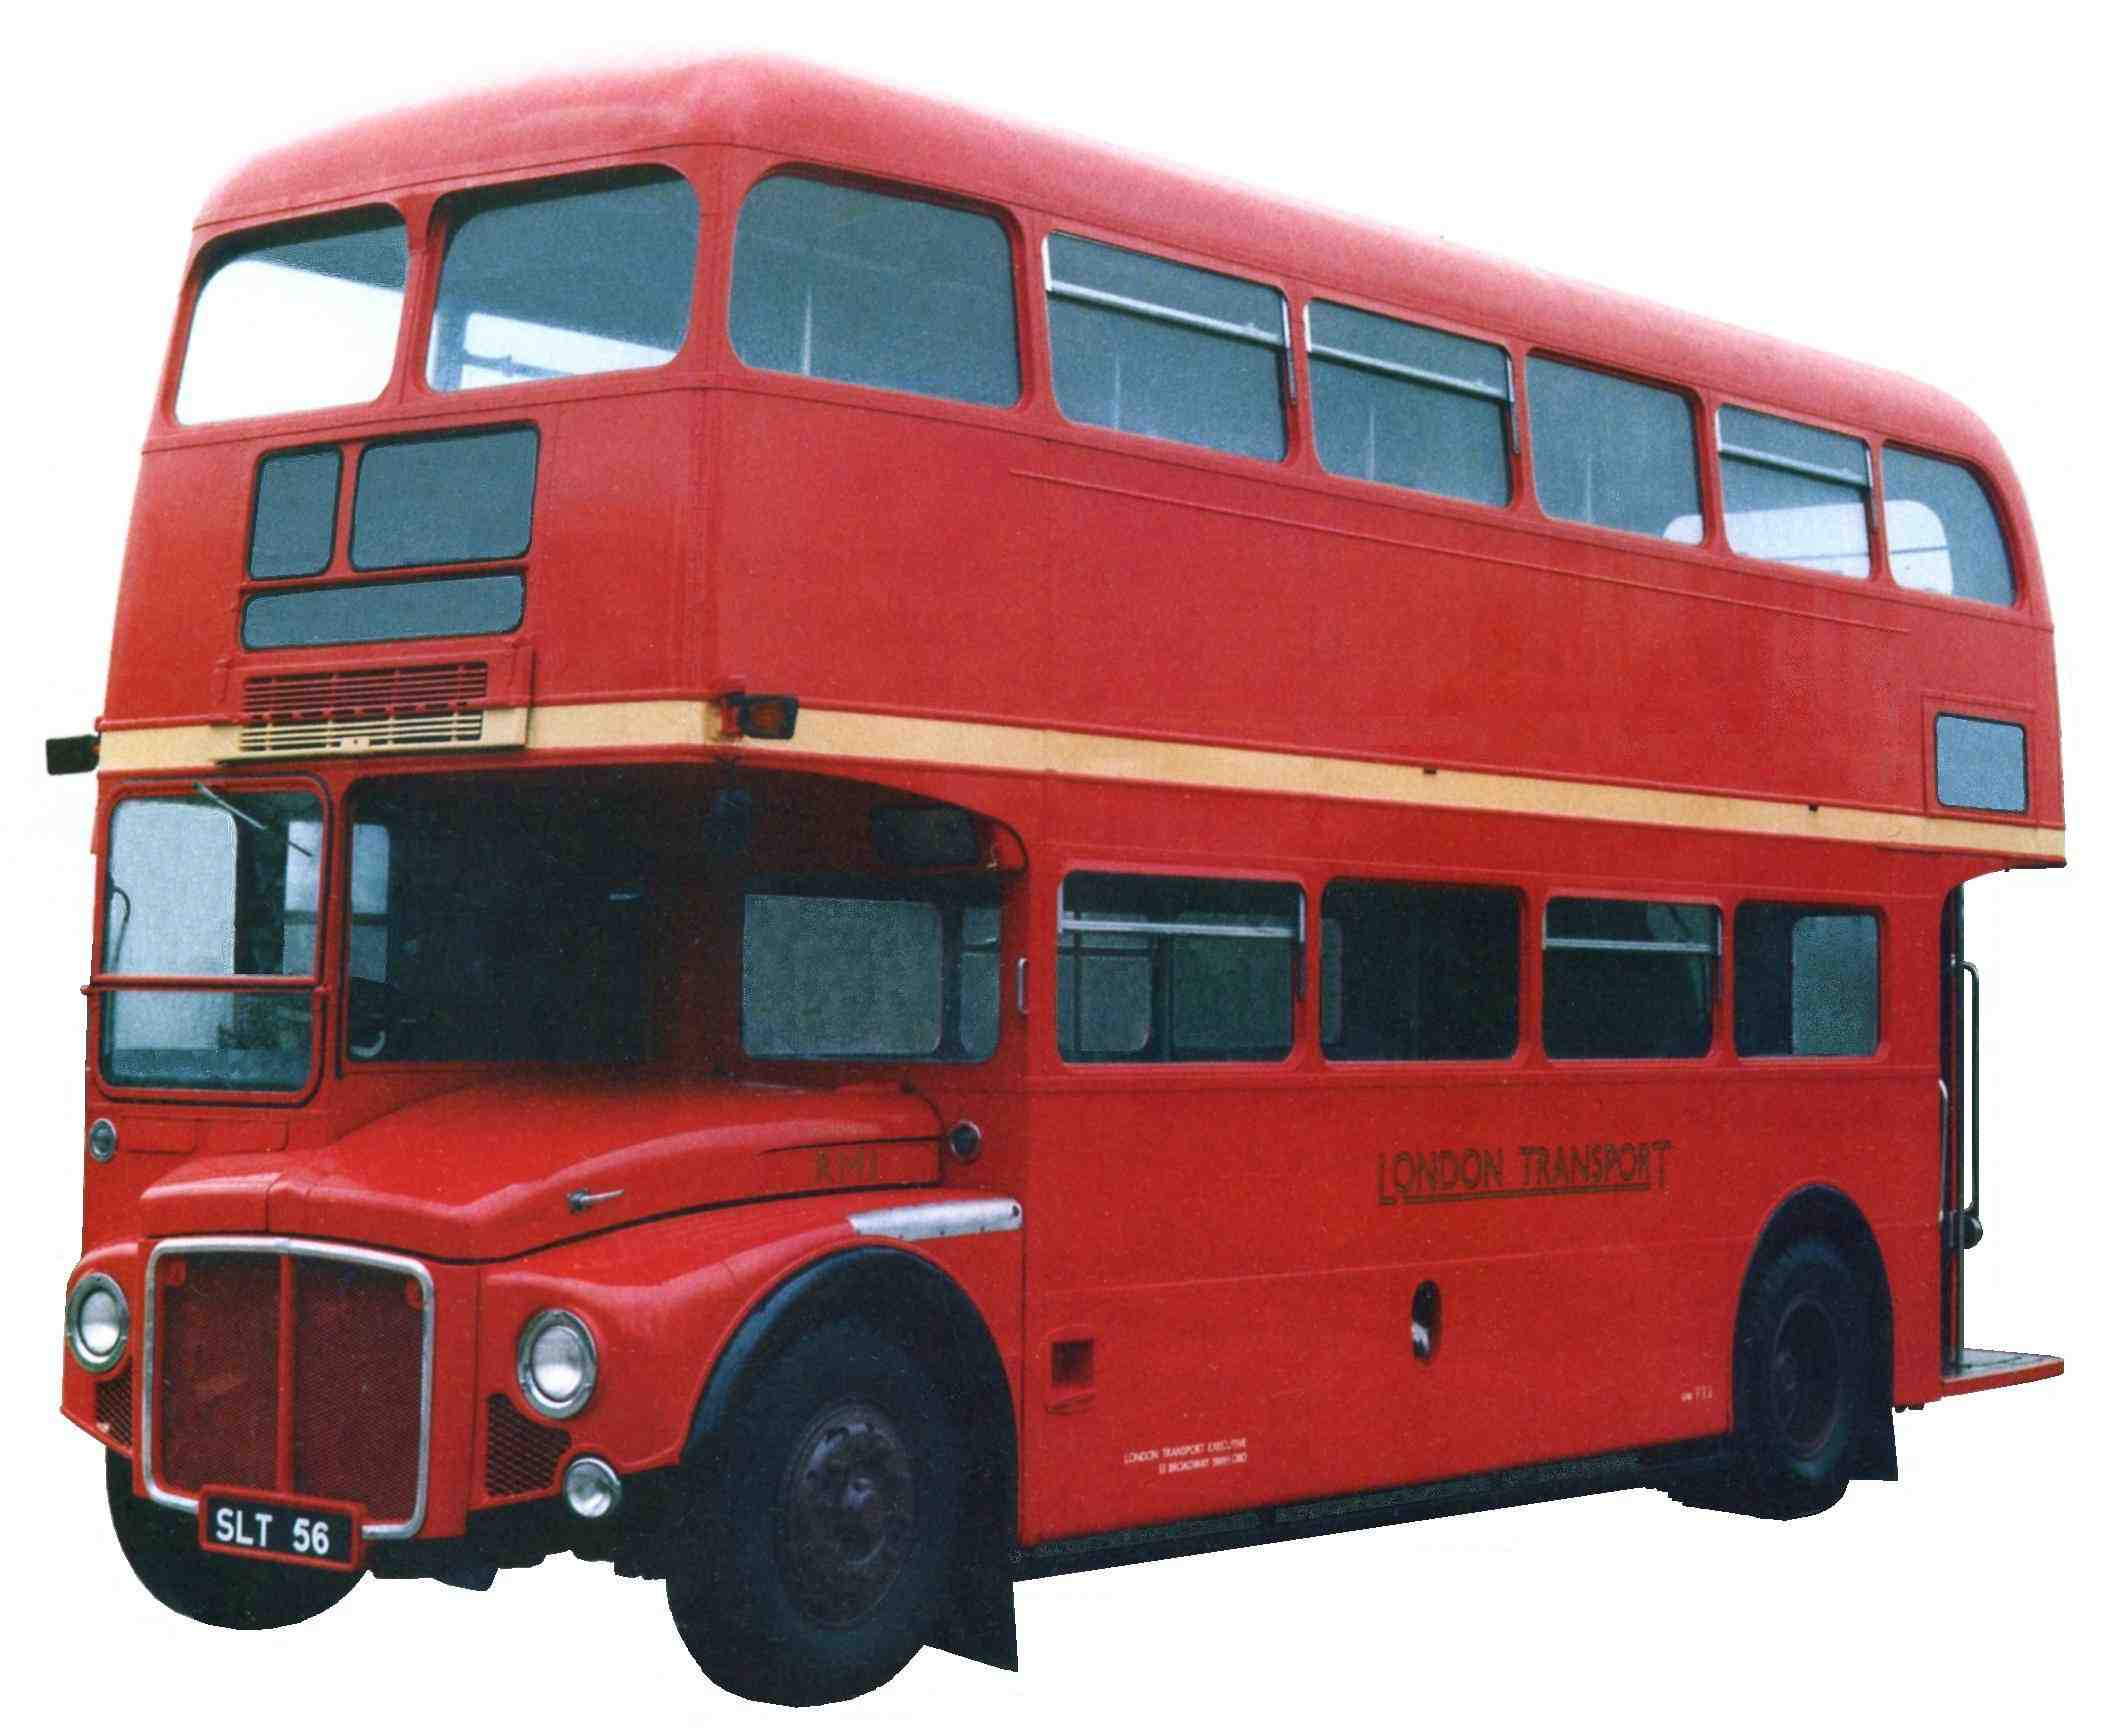 The London Transport Routemaster Bus